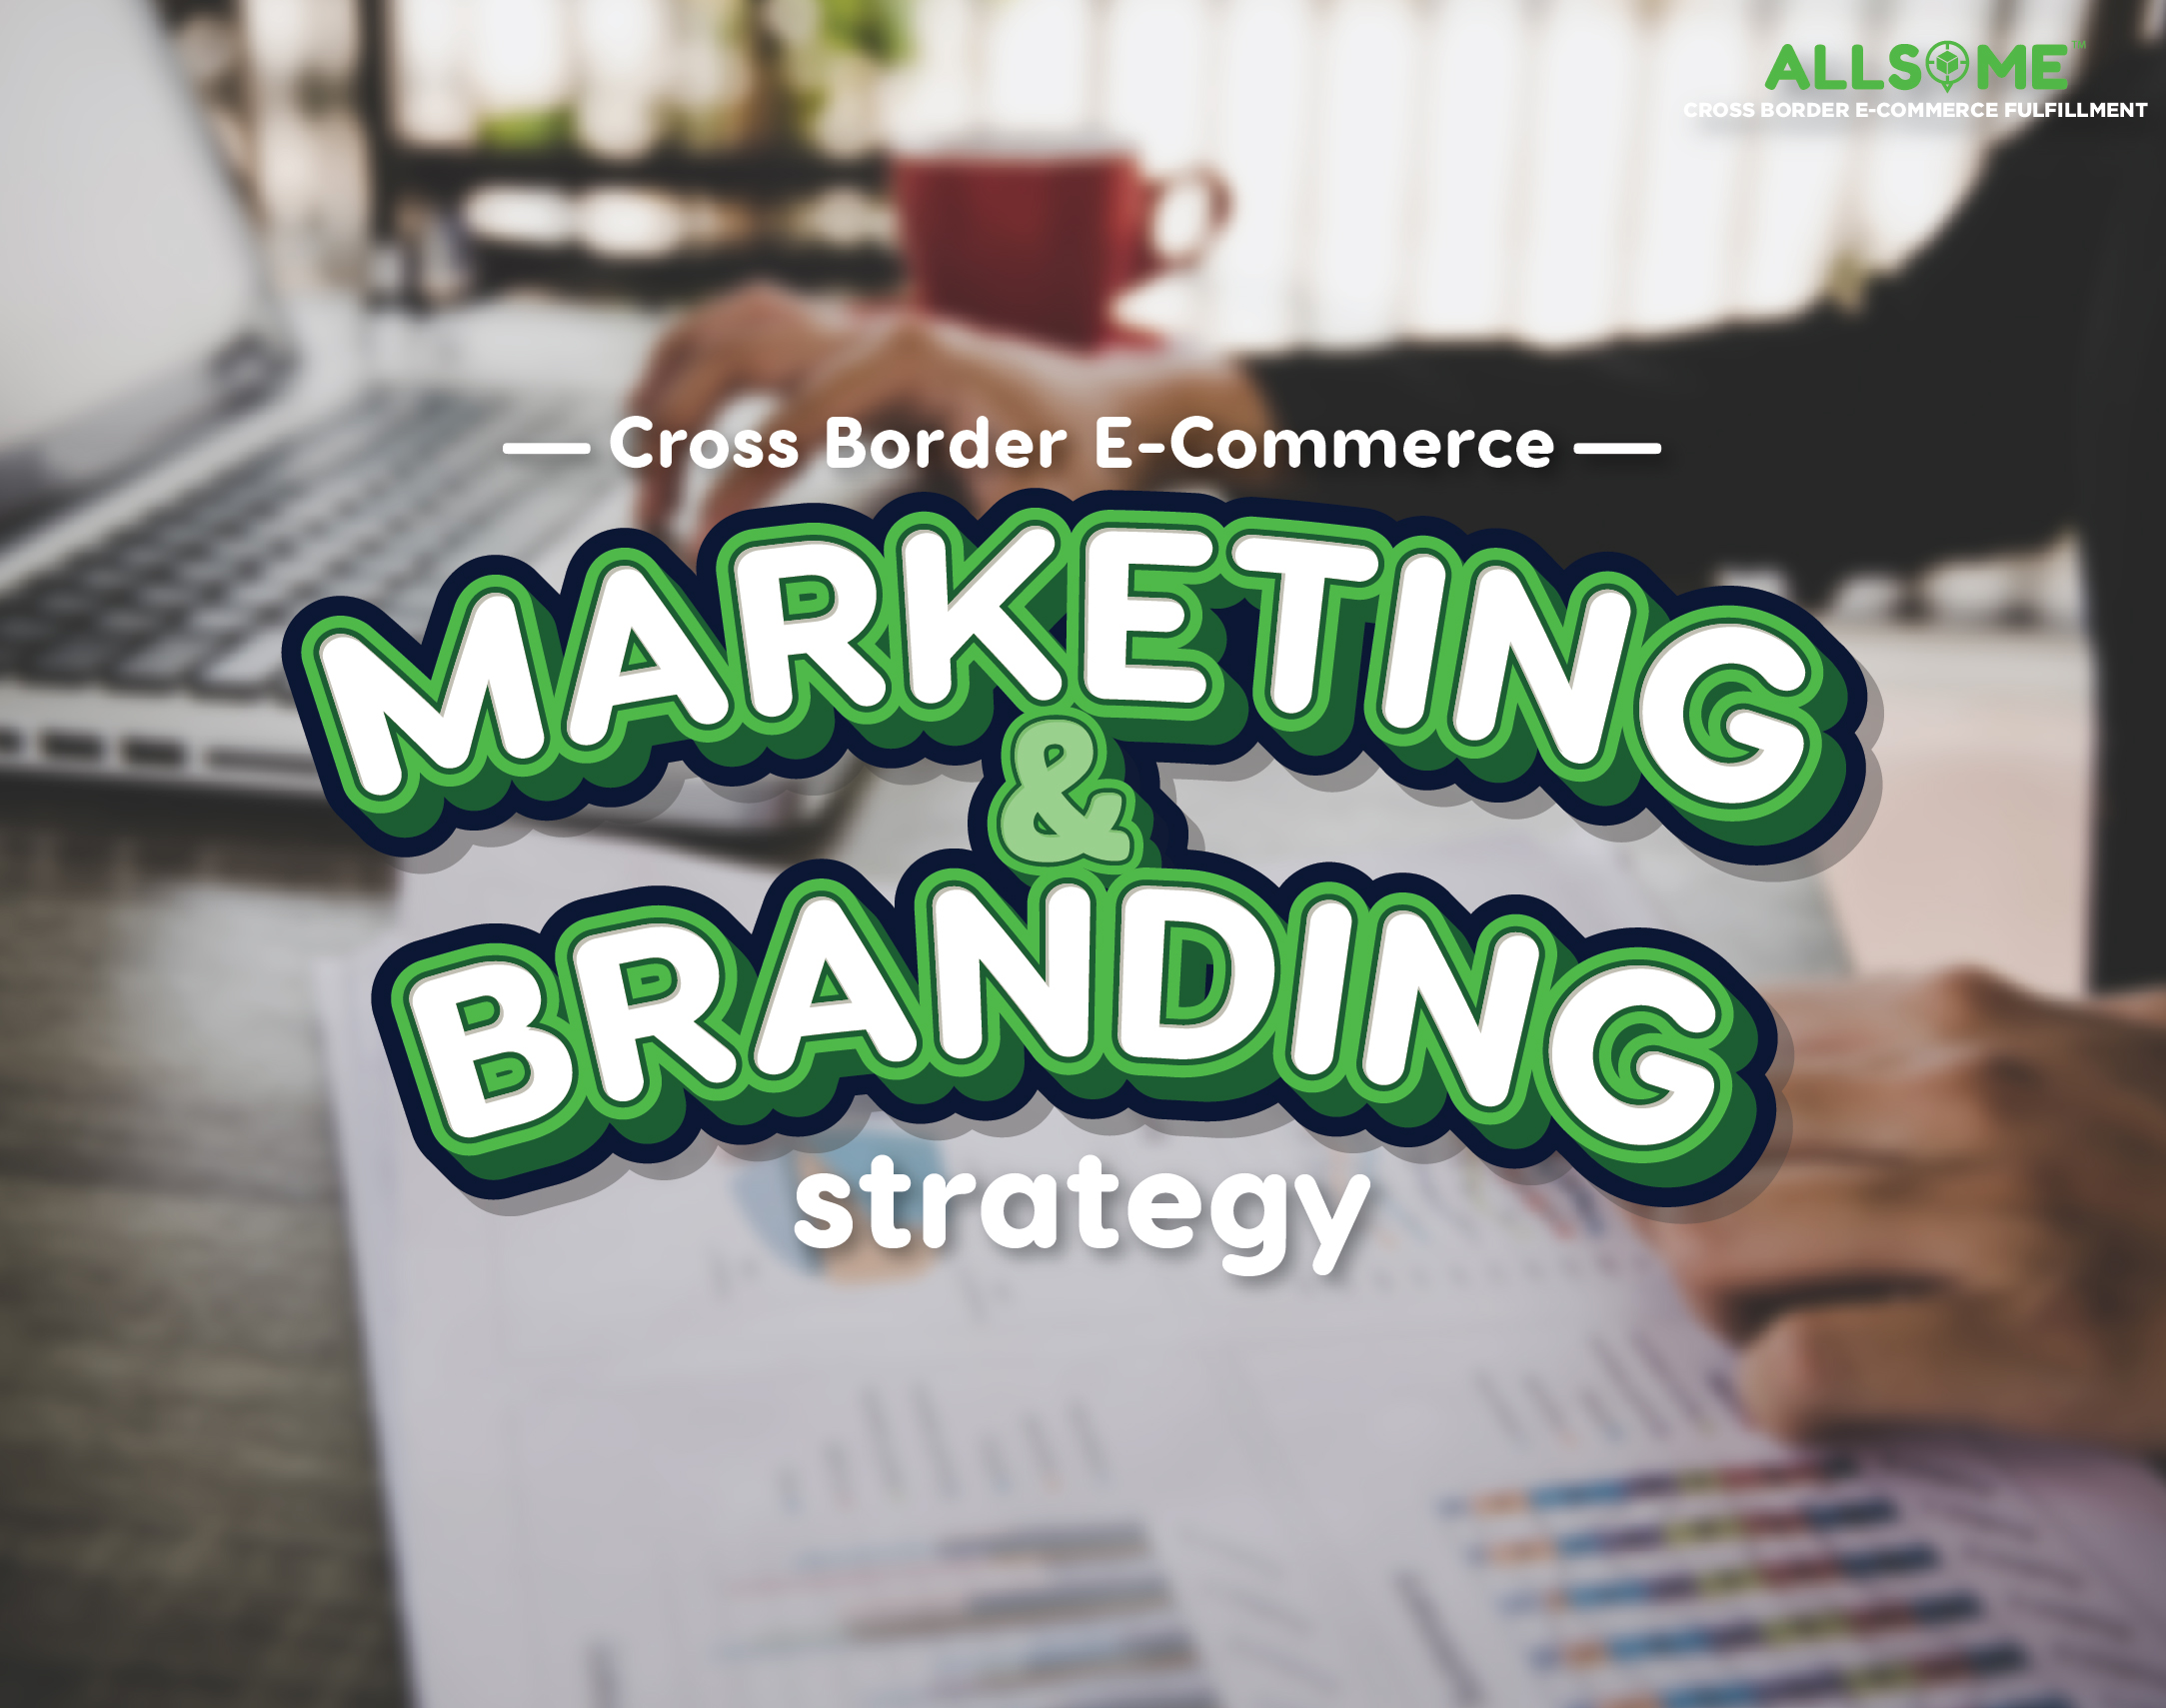 A Comprehensive Guide for Cross Border E-commerce Marketing & Branding Strategy: An Introduction